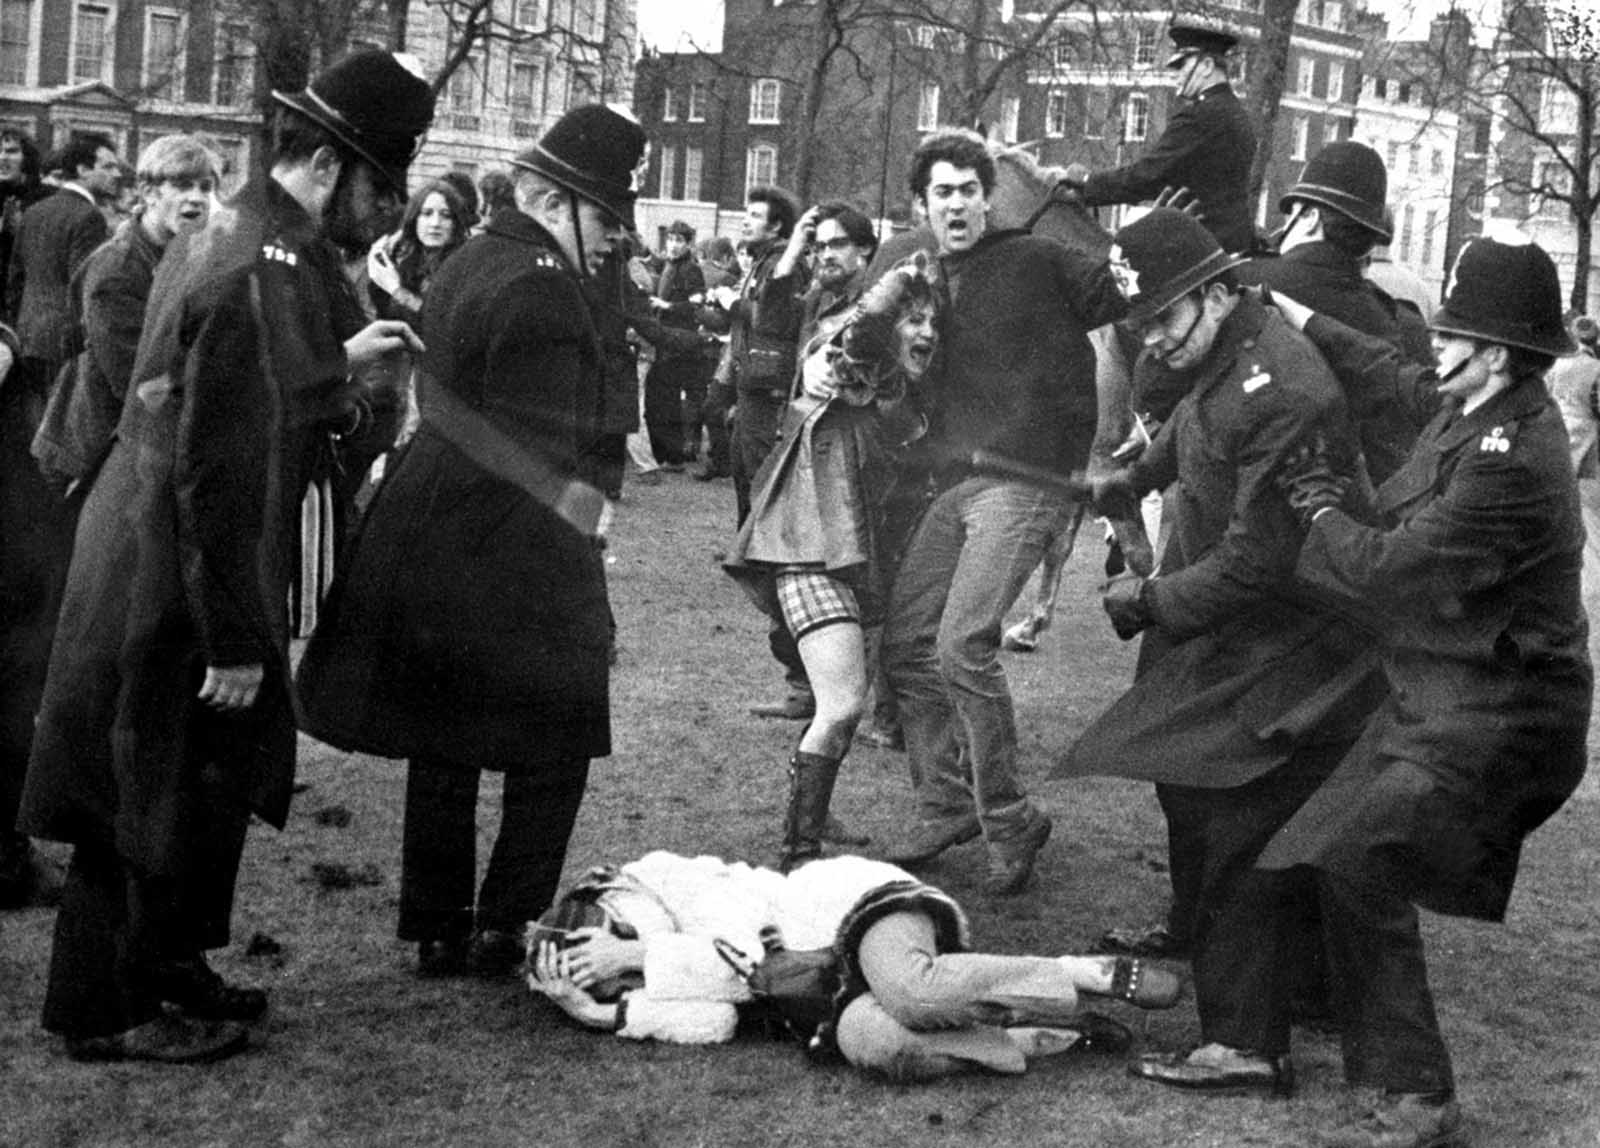 Police struggle with anti vietnam war demonstrators outside the embassy of the united states in grosvenor square london on march 17 1968